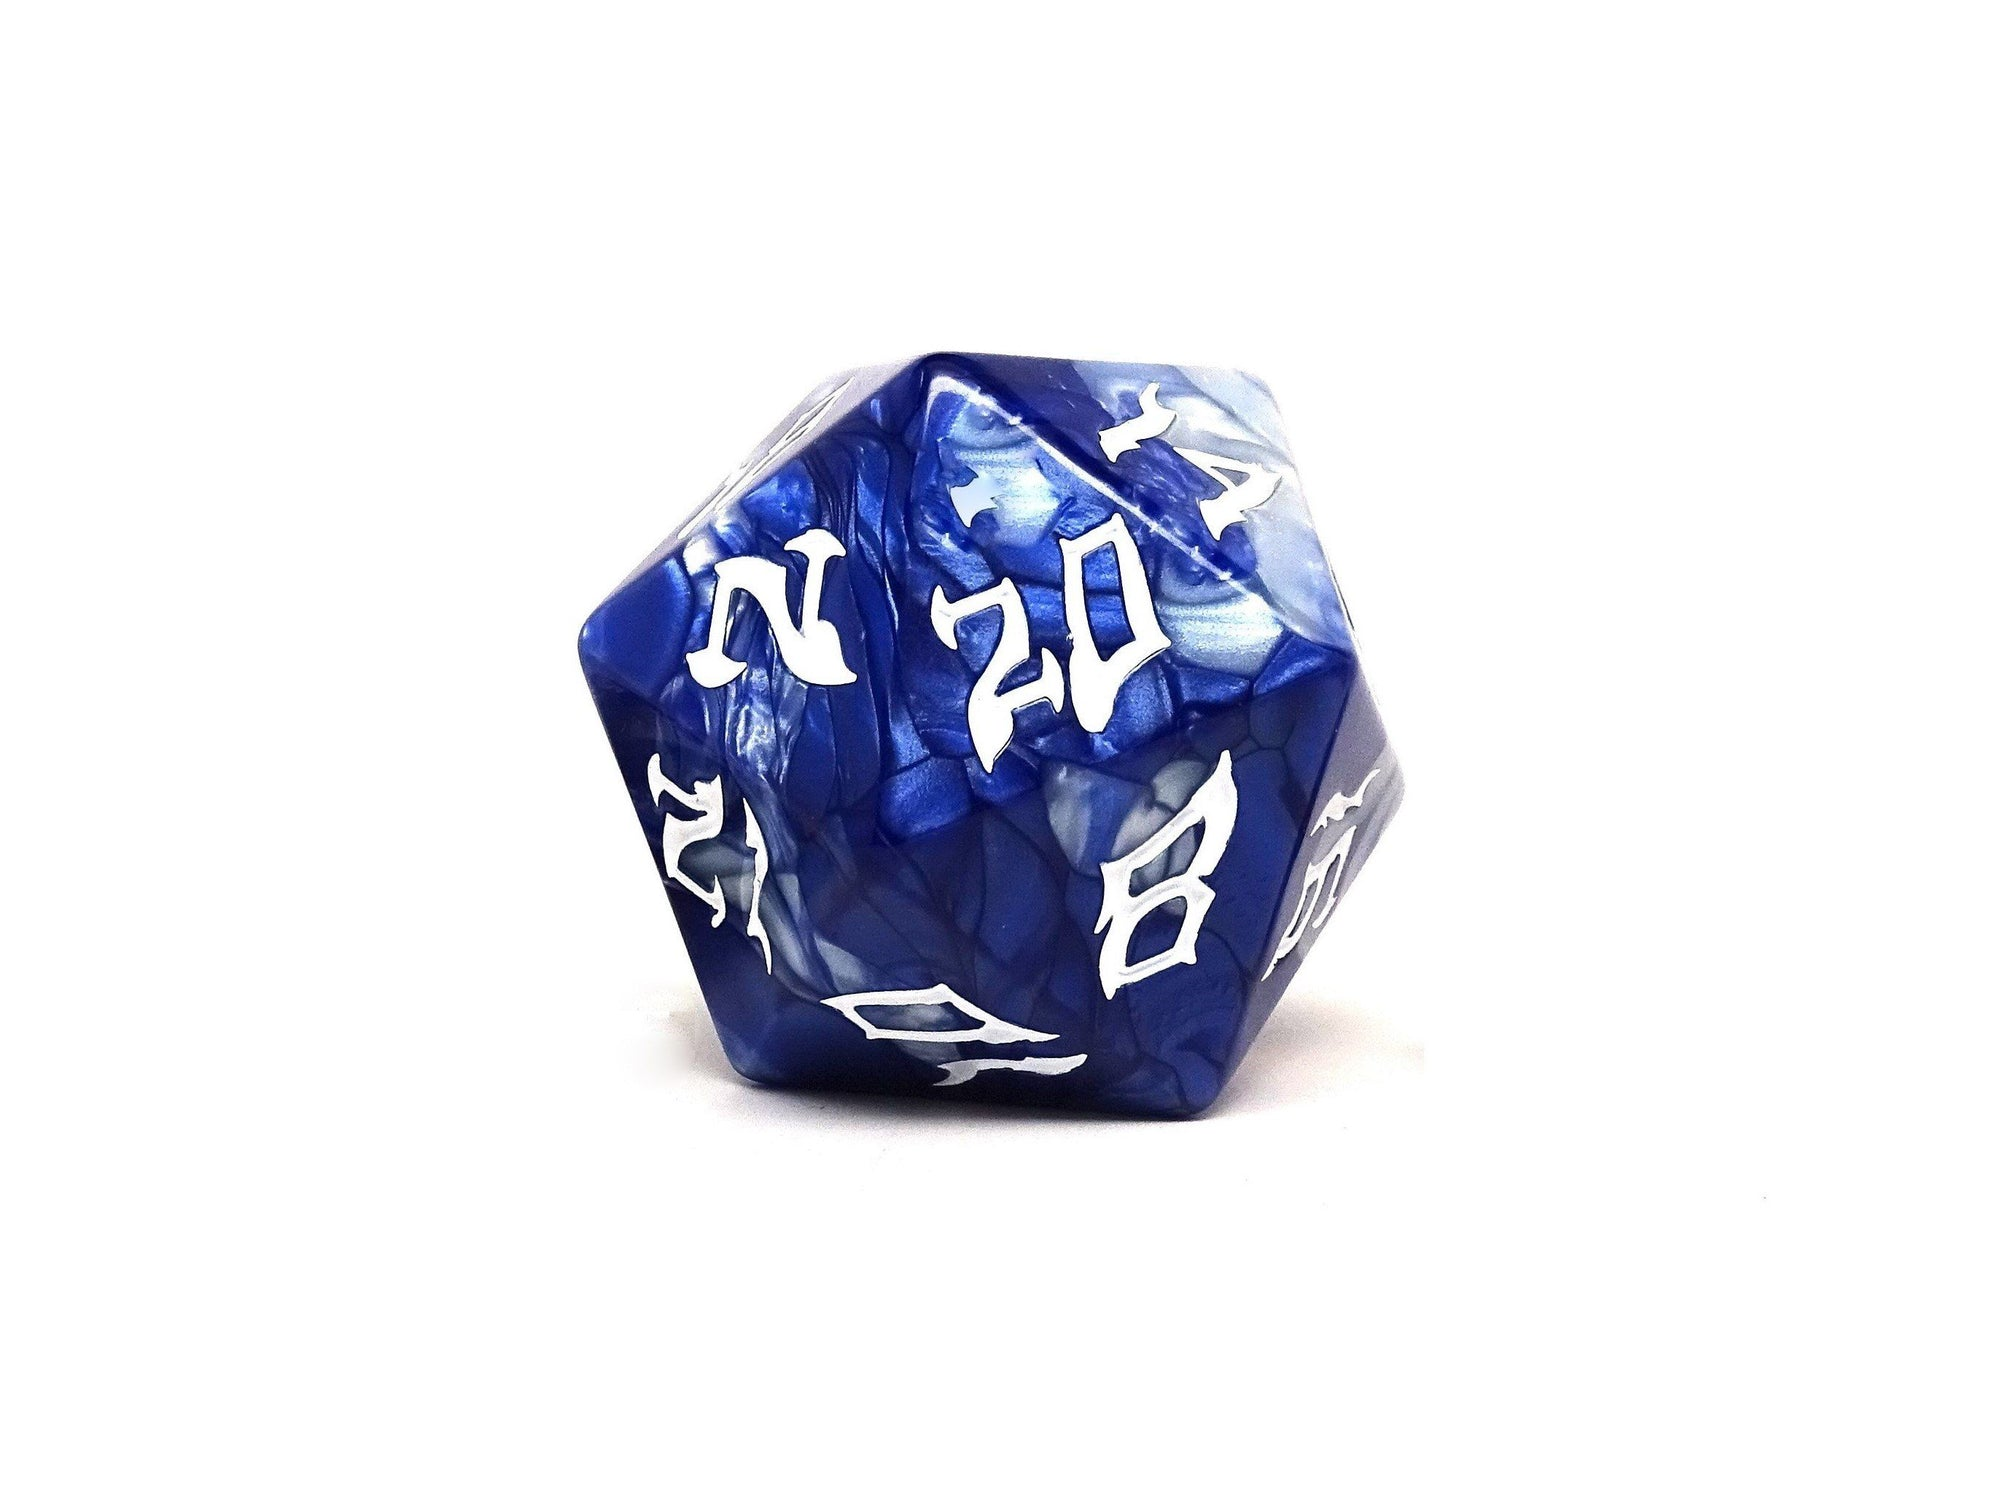 48mm Dice of the Giants - Storm Giant D20